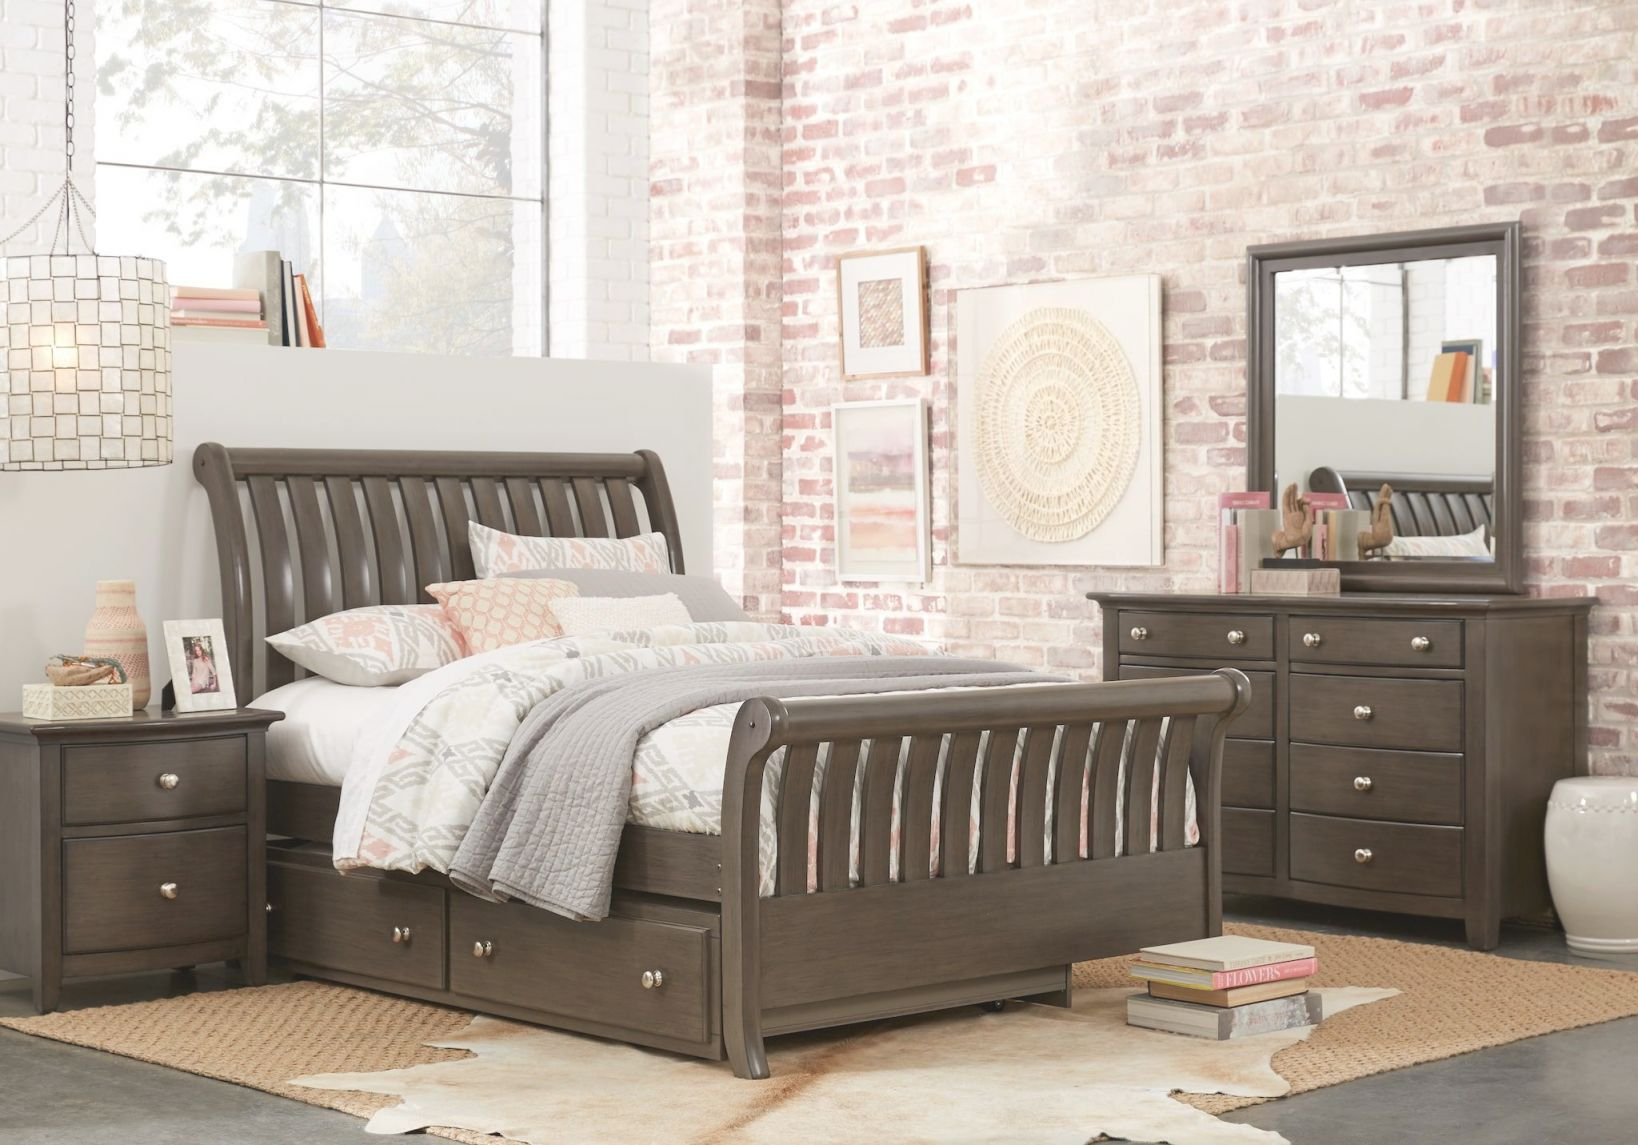 Full Size Bedroom Sets For Boys: Double Bedroom Suites regarding Teen Bedroom Furniture Sets